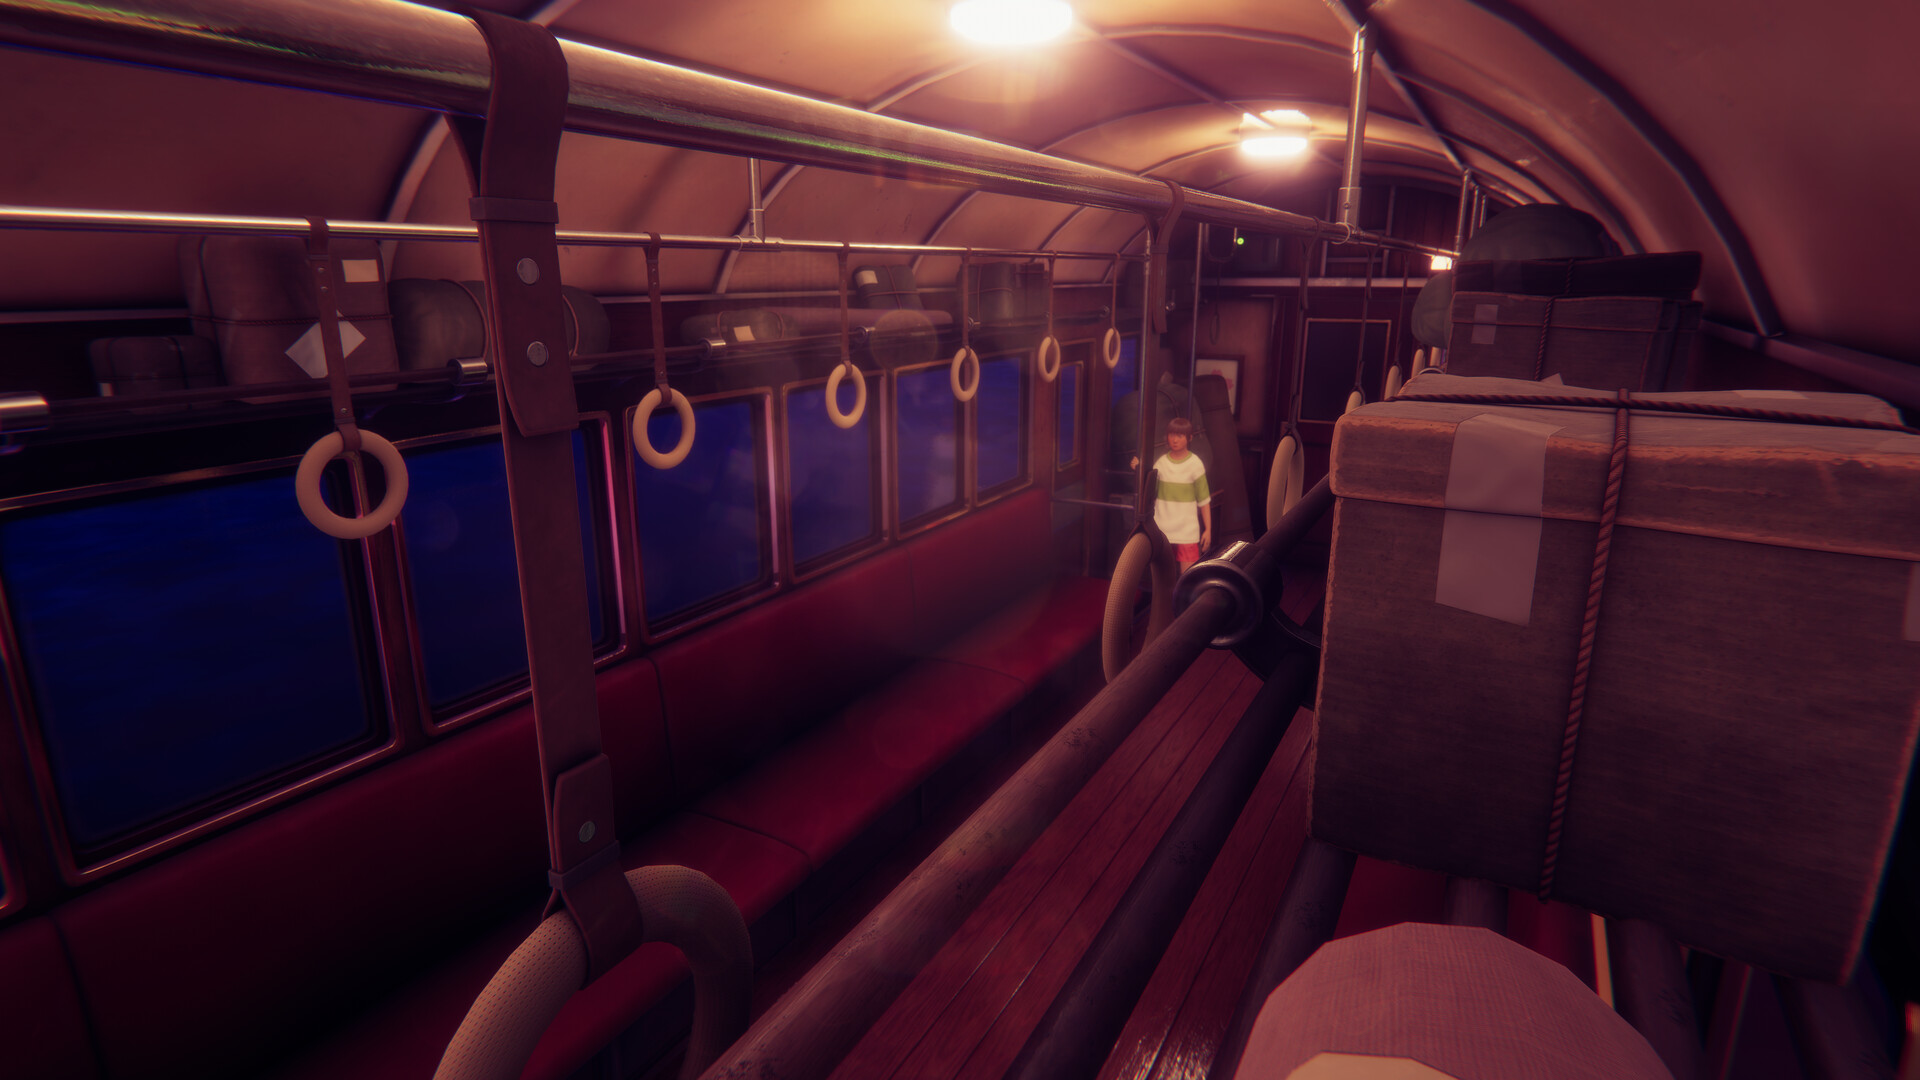 Paul Marundan Wip Spirited Away Train Scene Unity Hdrp